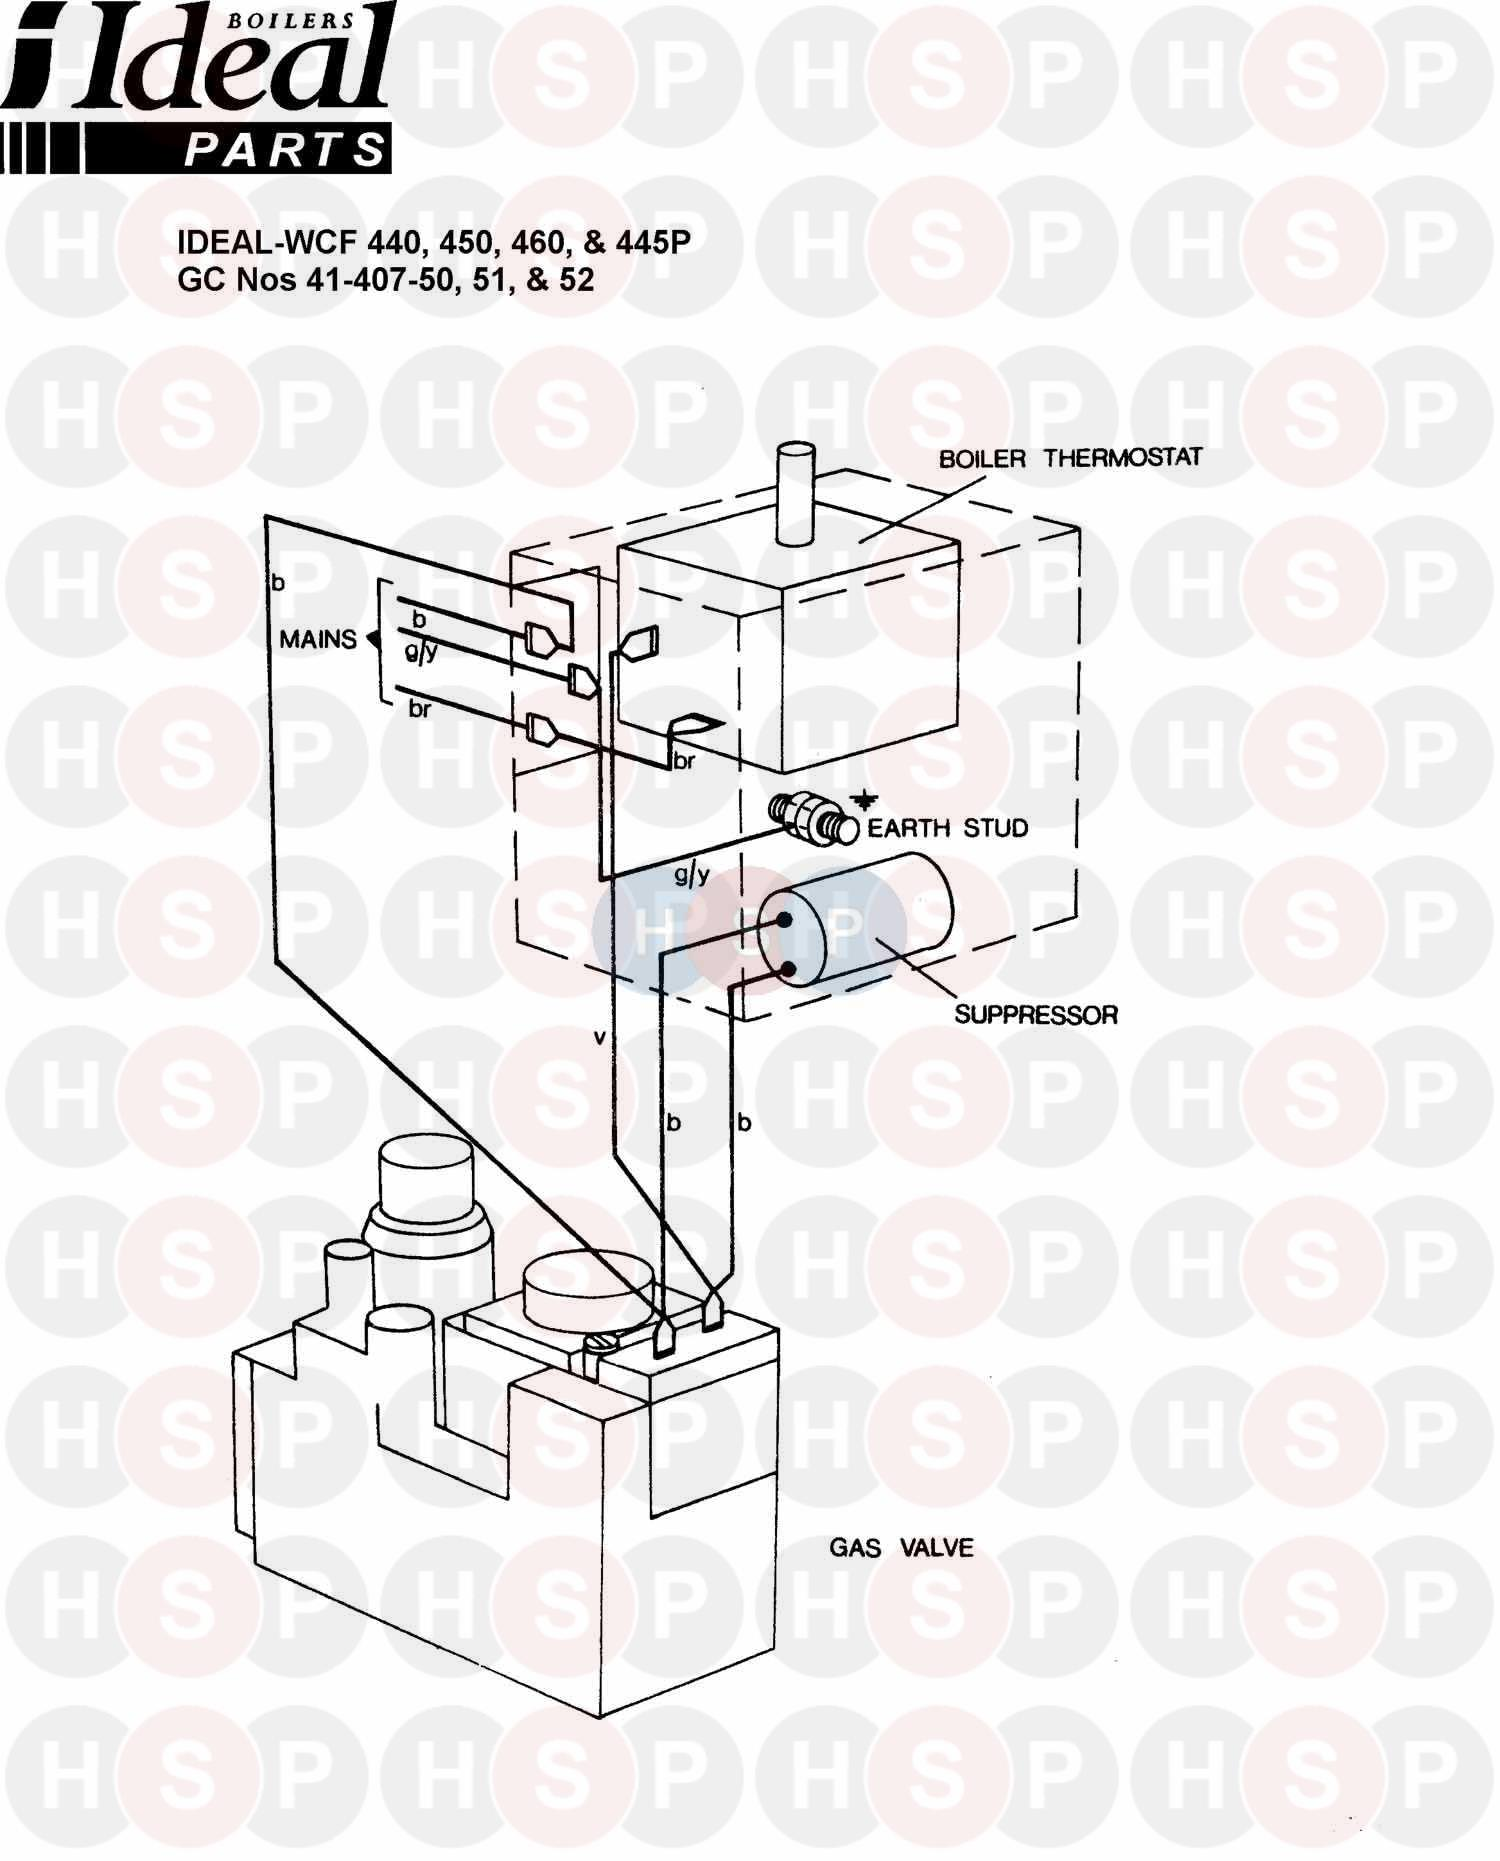 Ideal Concord Wcf 440 Wiring Diagram 1 Heating Spare Parts Click The To Open It On A New Page